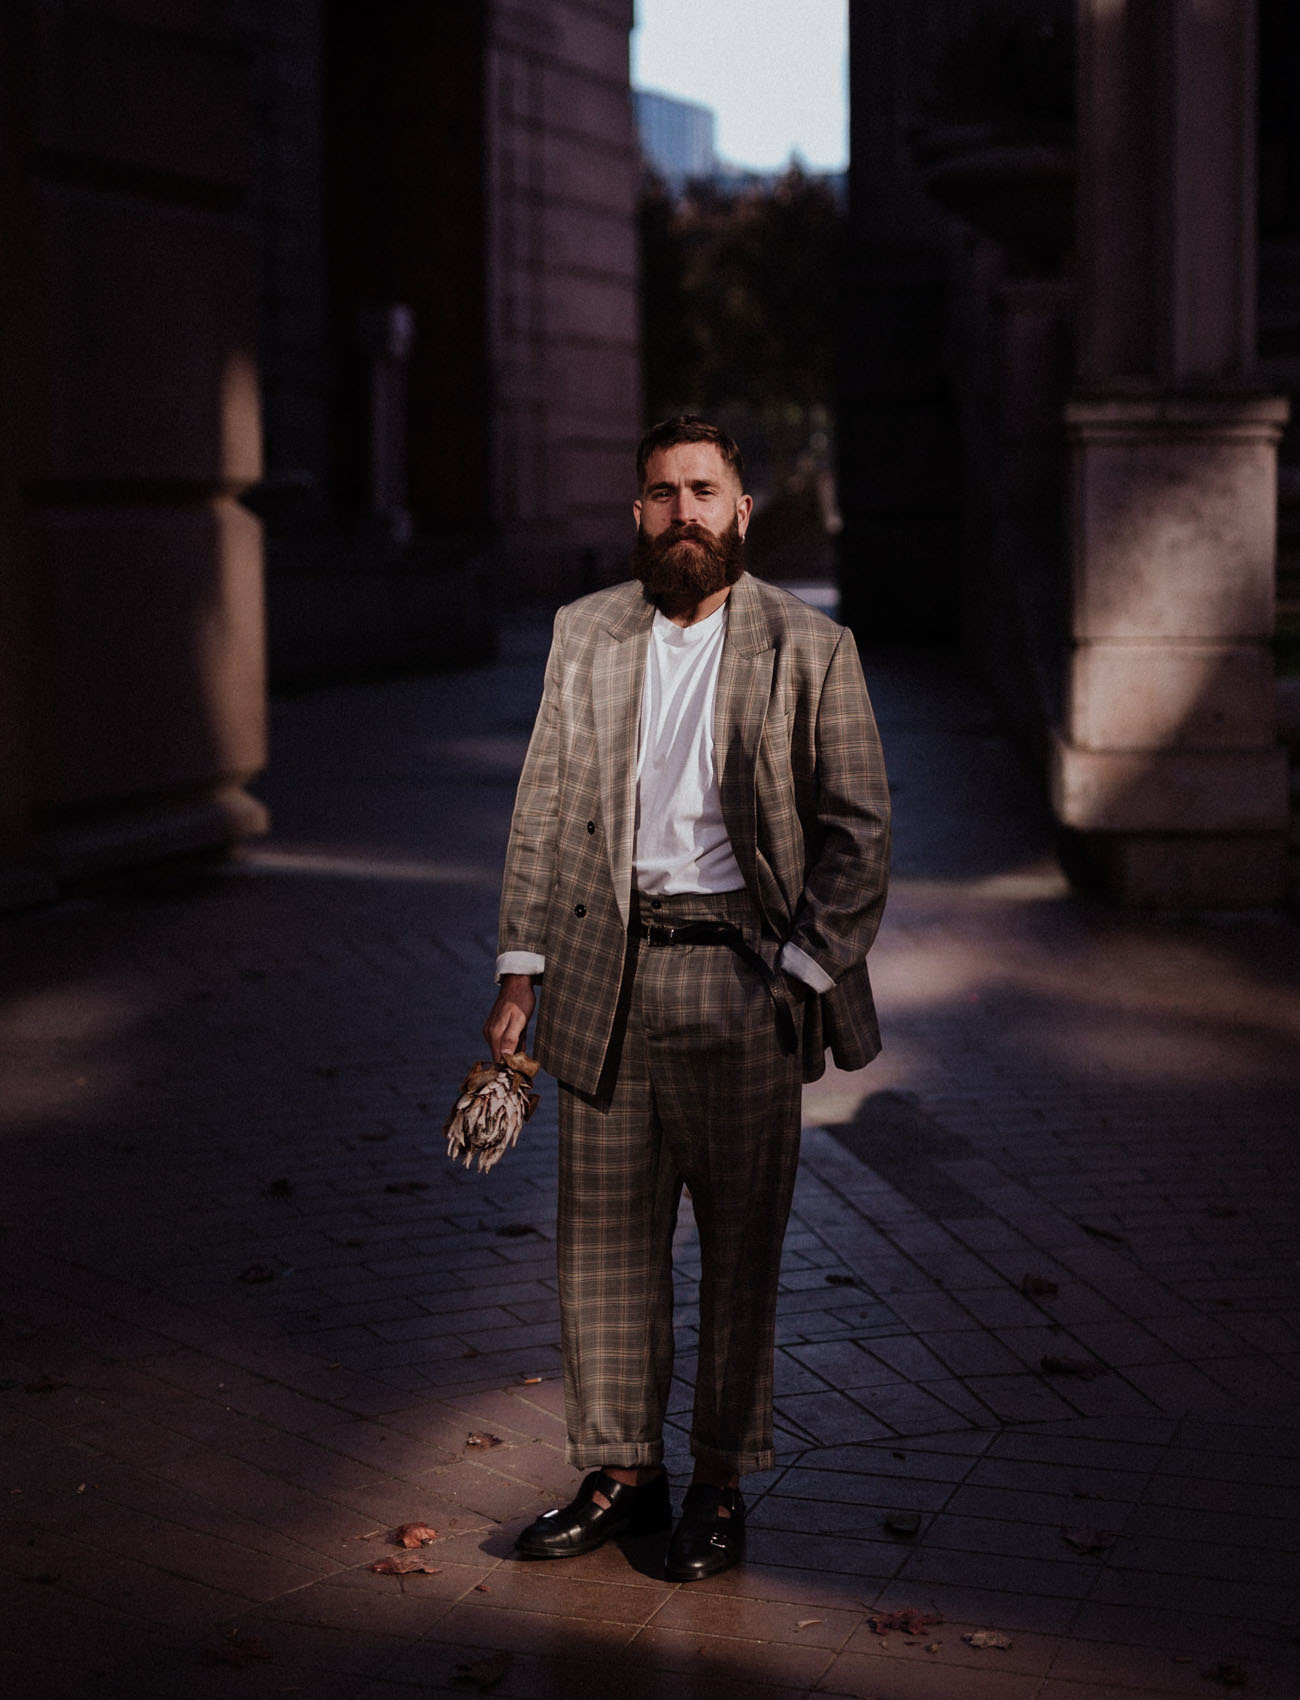 grooms plaid suit